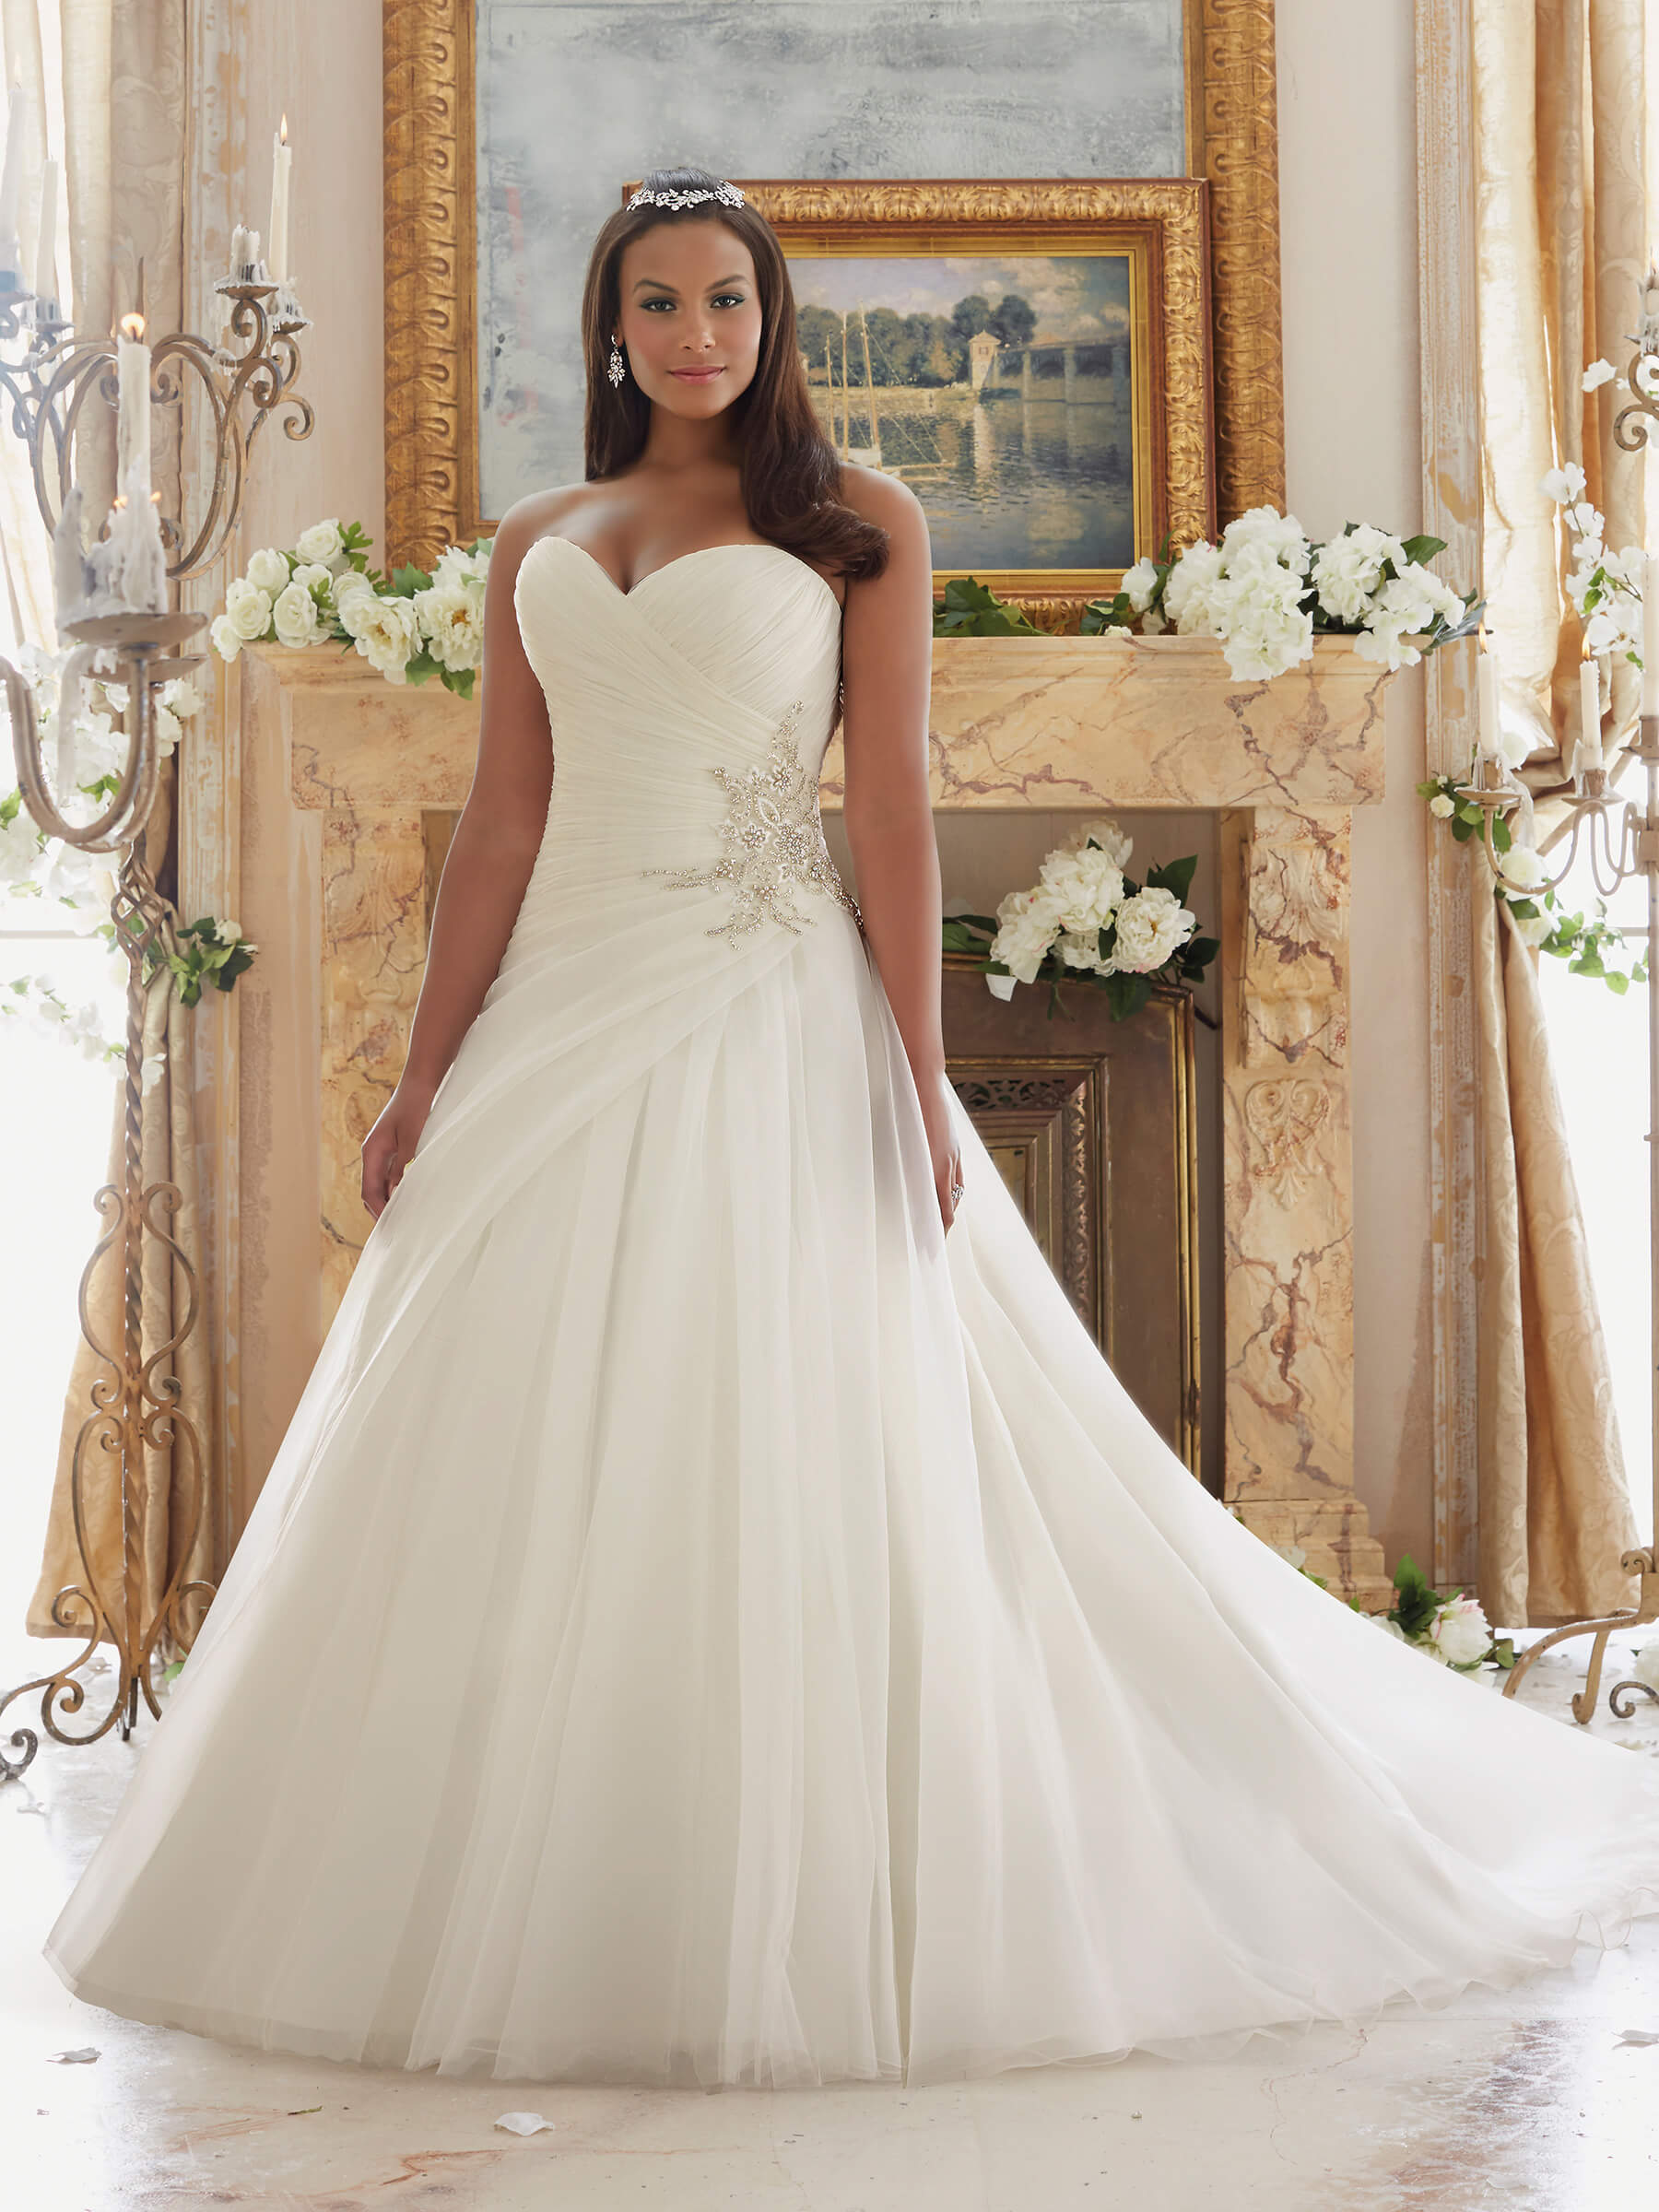 huge wedding dresses mori julietta plus size 3203 royal esk 252 vői ruhaszalon 5033